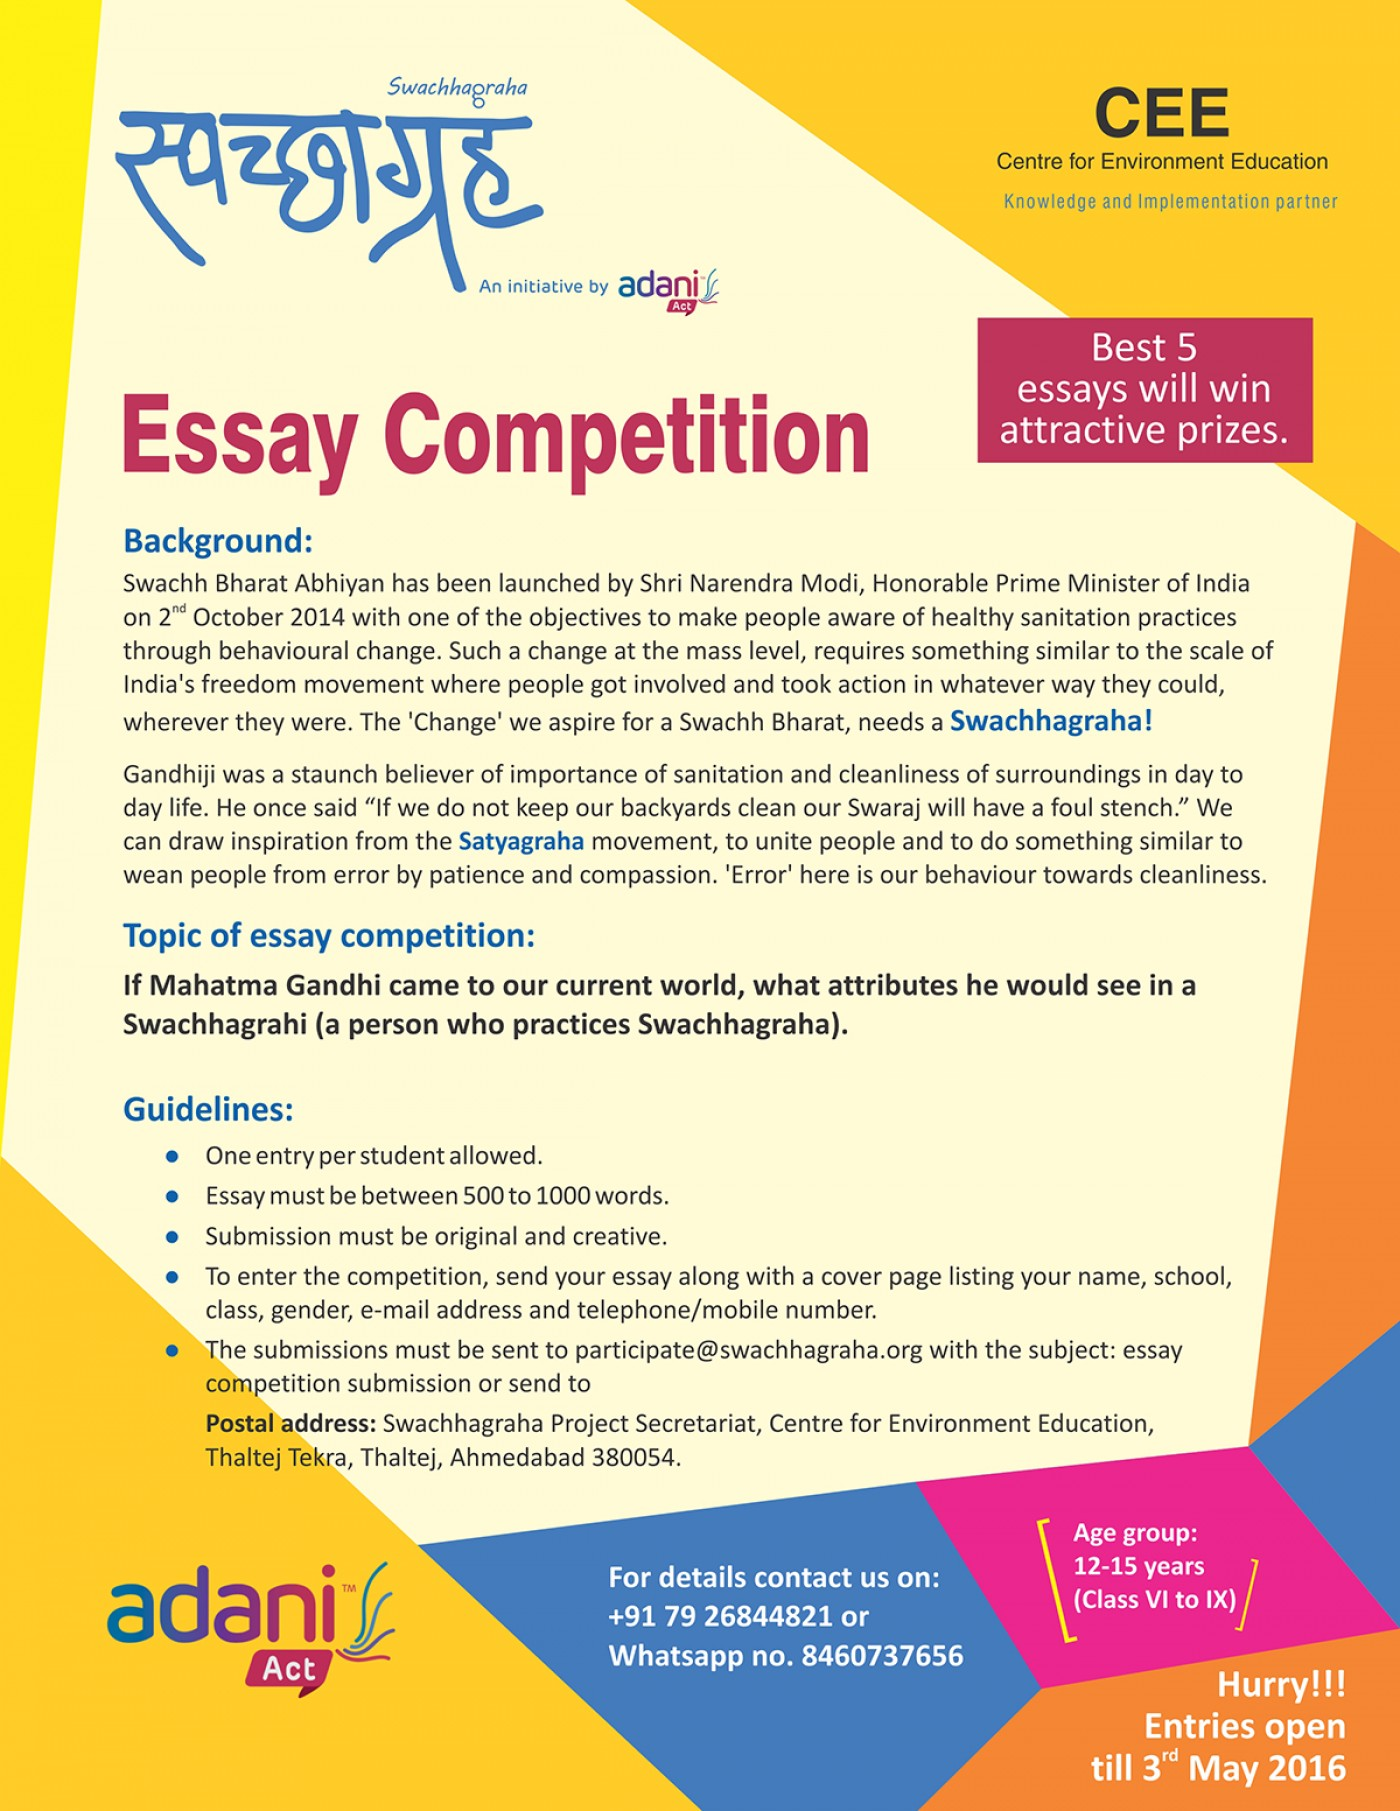 011 20180129171946essay20competition Essay About Cleanliness In School Phenomenal Writing On And Hygiene Practices Persuasive Toilet Its Surrounding 1400